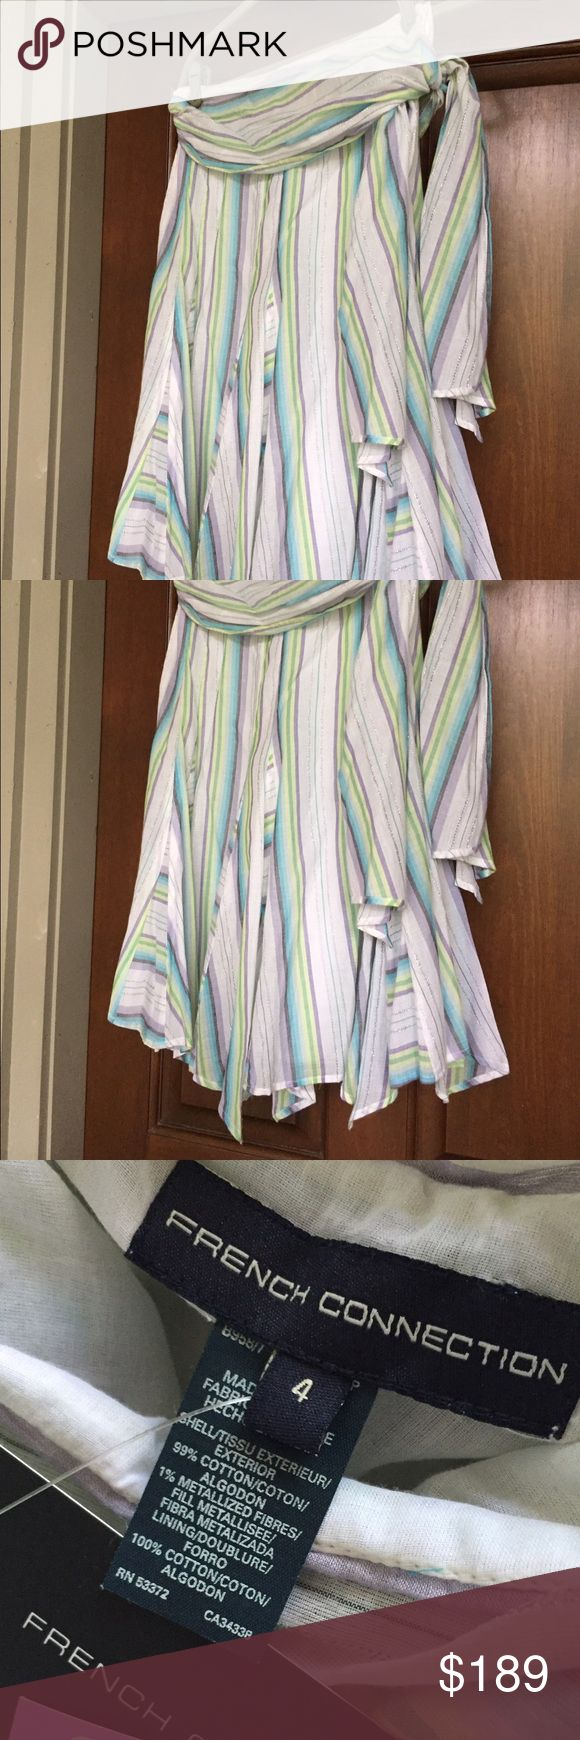 French Connection Multi Colour Skirt Size 4 Retail $228. Multicolored with purples, blues and greens and silver. Ties at waist. NWT – has never been worn but is slight staining on interior lining – positive it would come out with either normal washing or dry cleaning. French Connection Skirts Circle & Skater